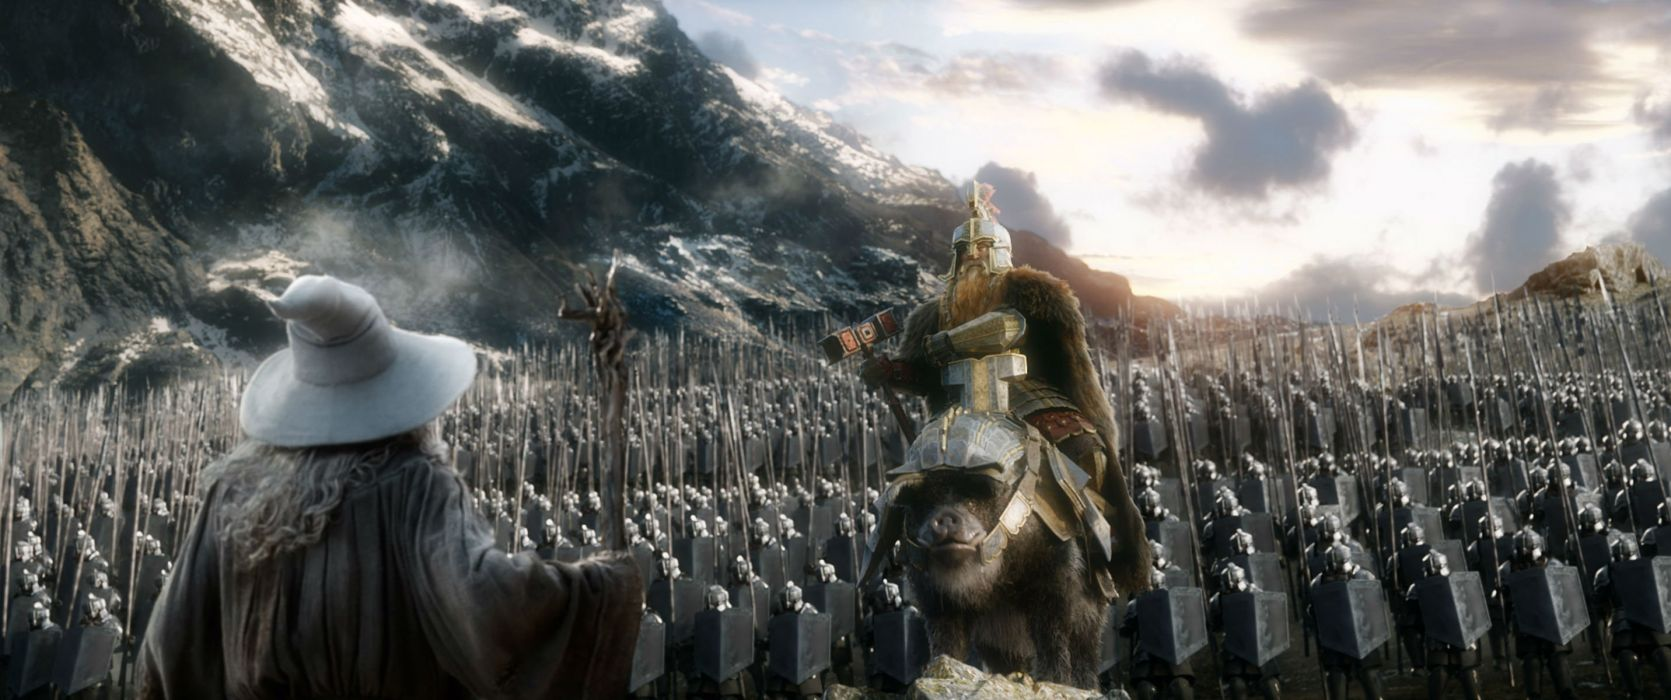 HOBBIT BATTLE-FIVE-ARMIES lotr fantasy battle armies lord rings adventure wallpaper